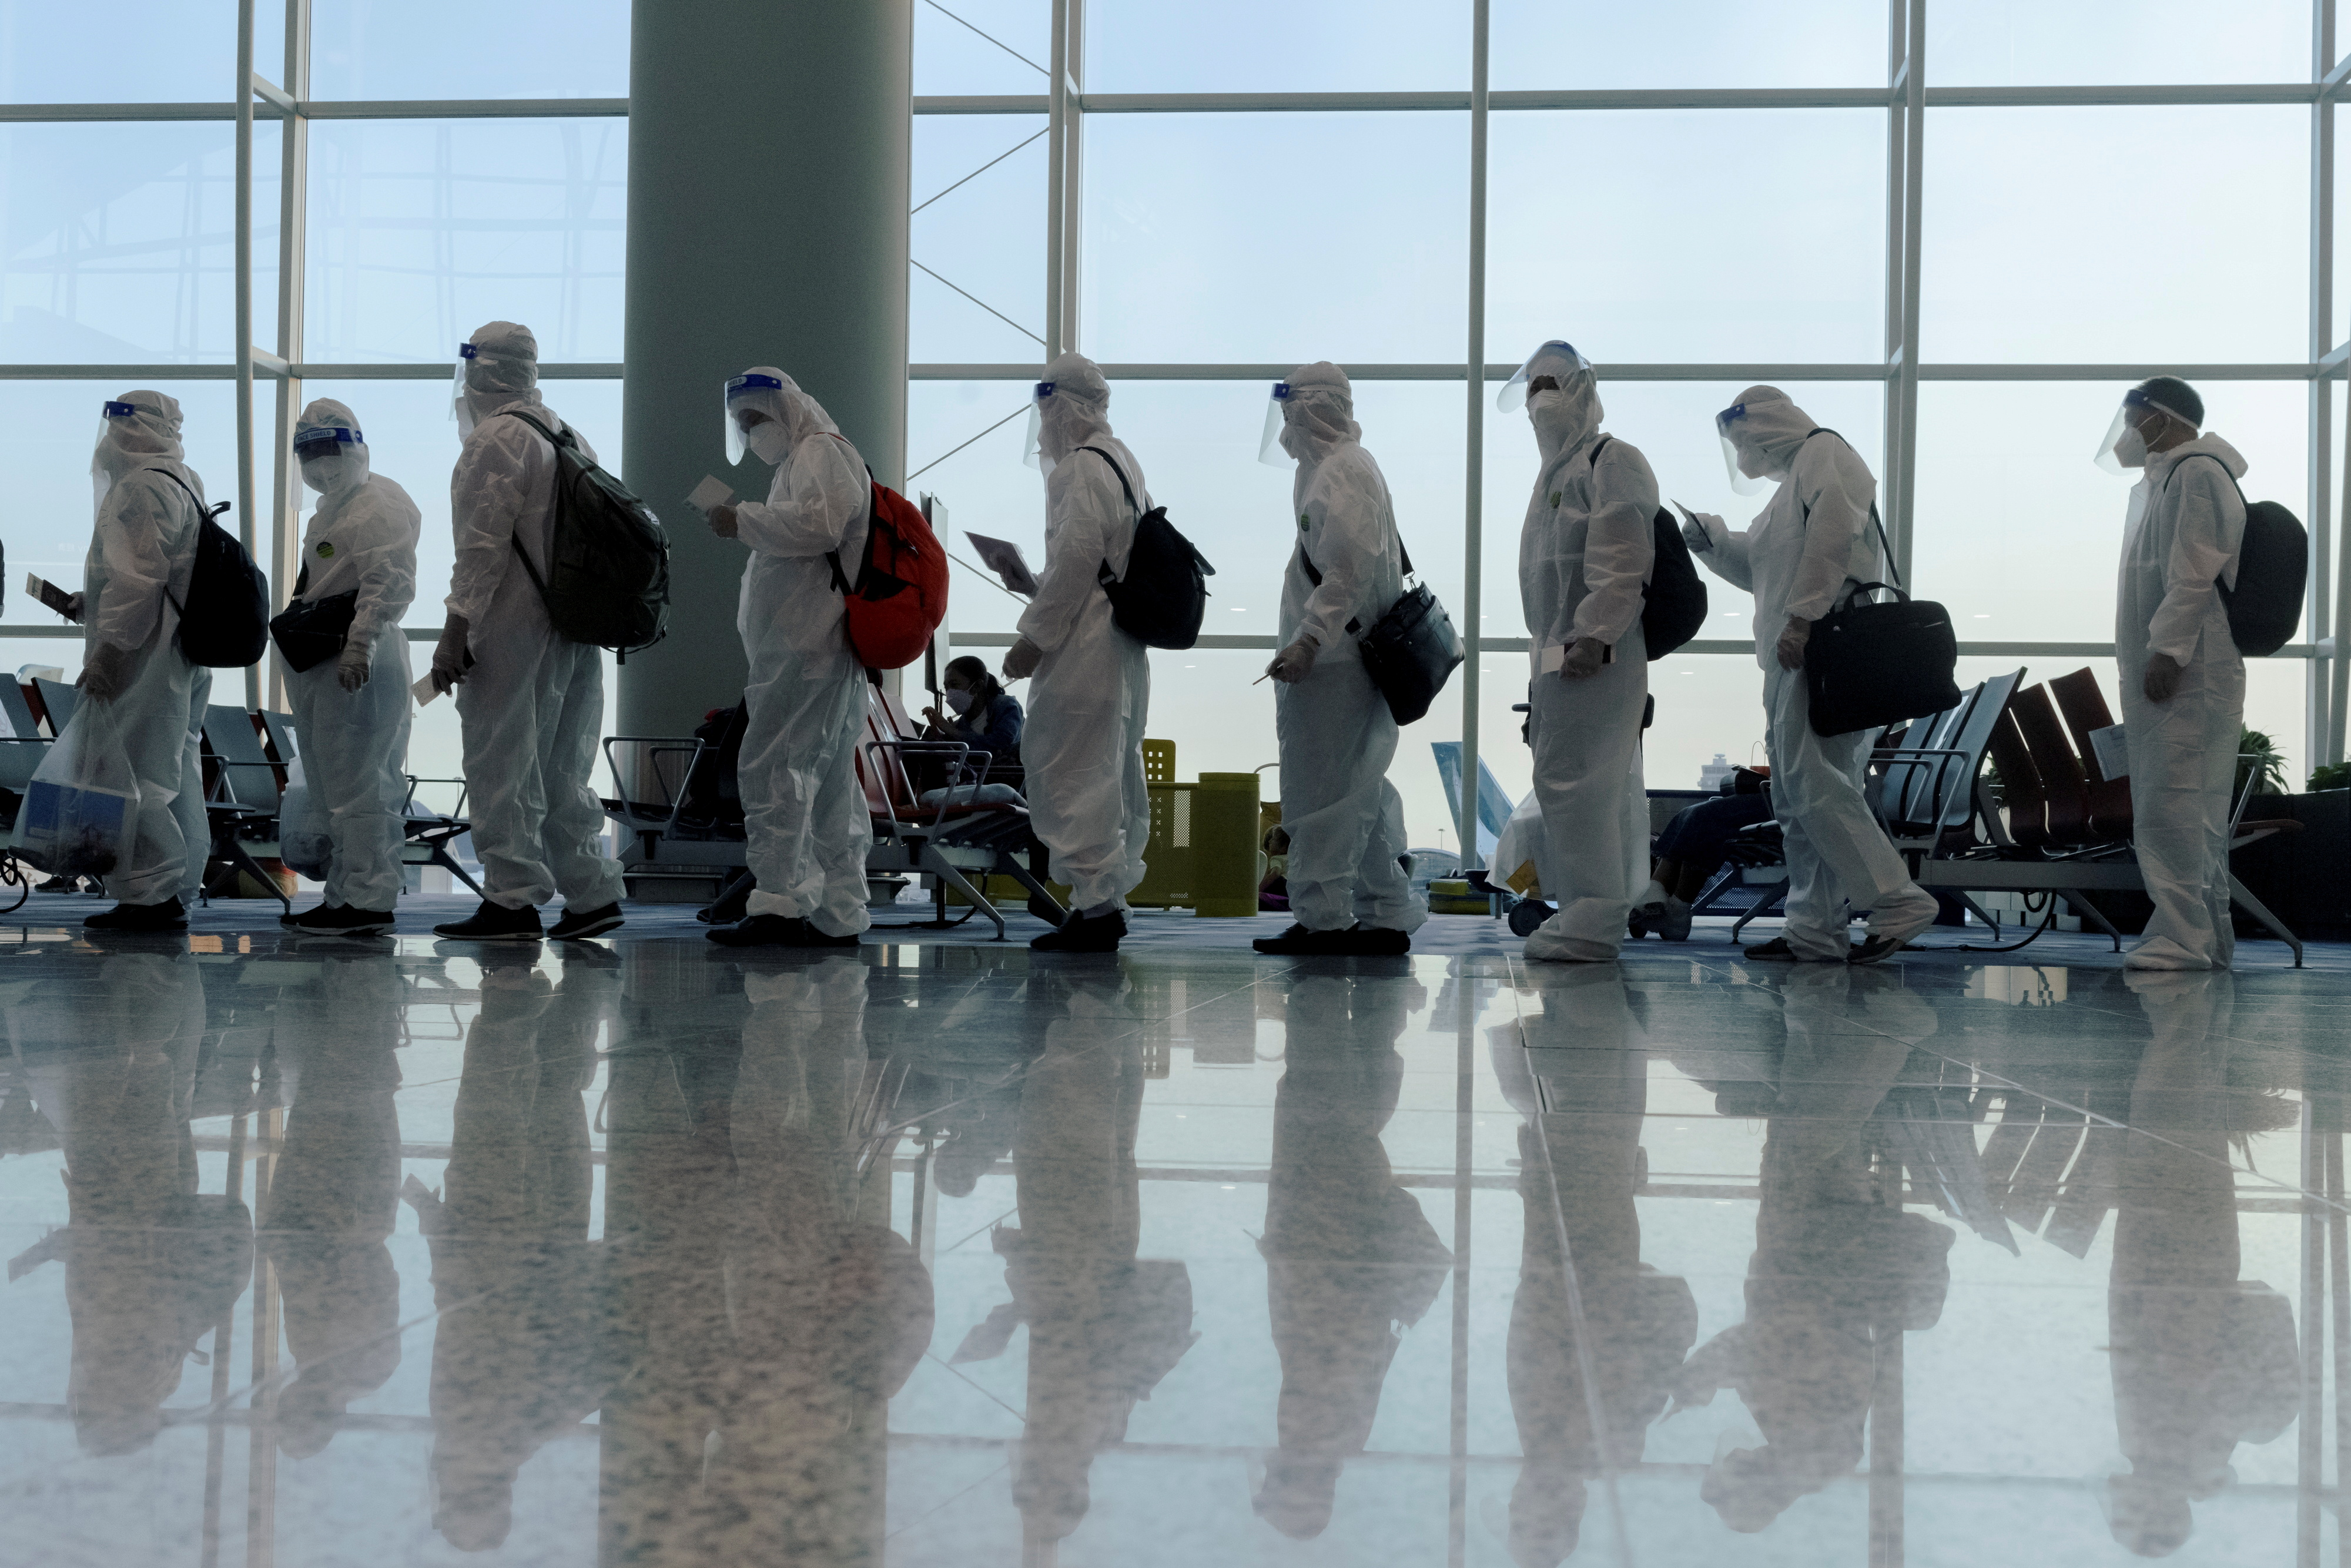 Passengers wearing protective suits (PPE) line up to board their plane for an international flight at Hong Kong airport amid the spread of the coronavirus disease (COVID-19), China July 9, 2021. REUTERS/Thomas Peter/File Photo